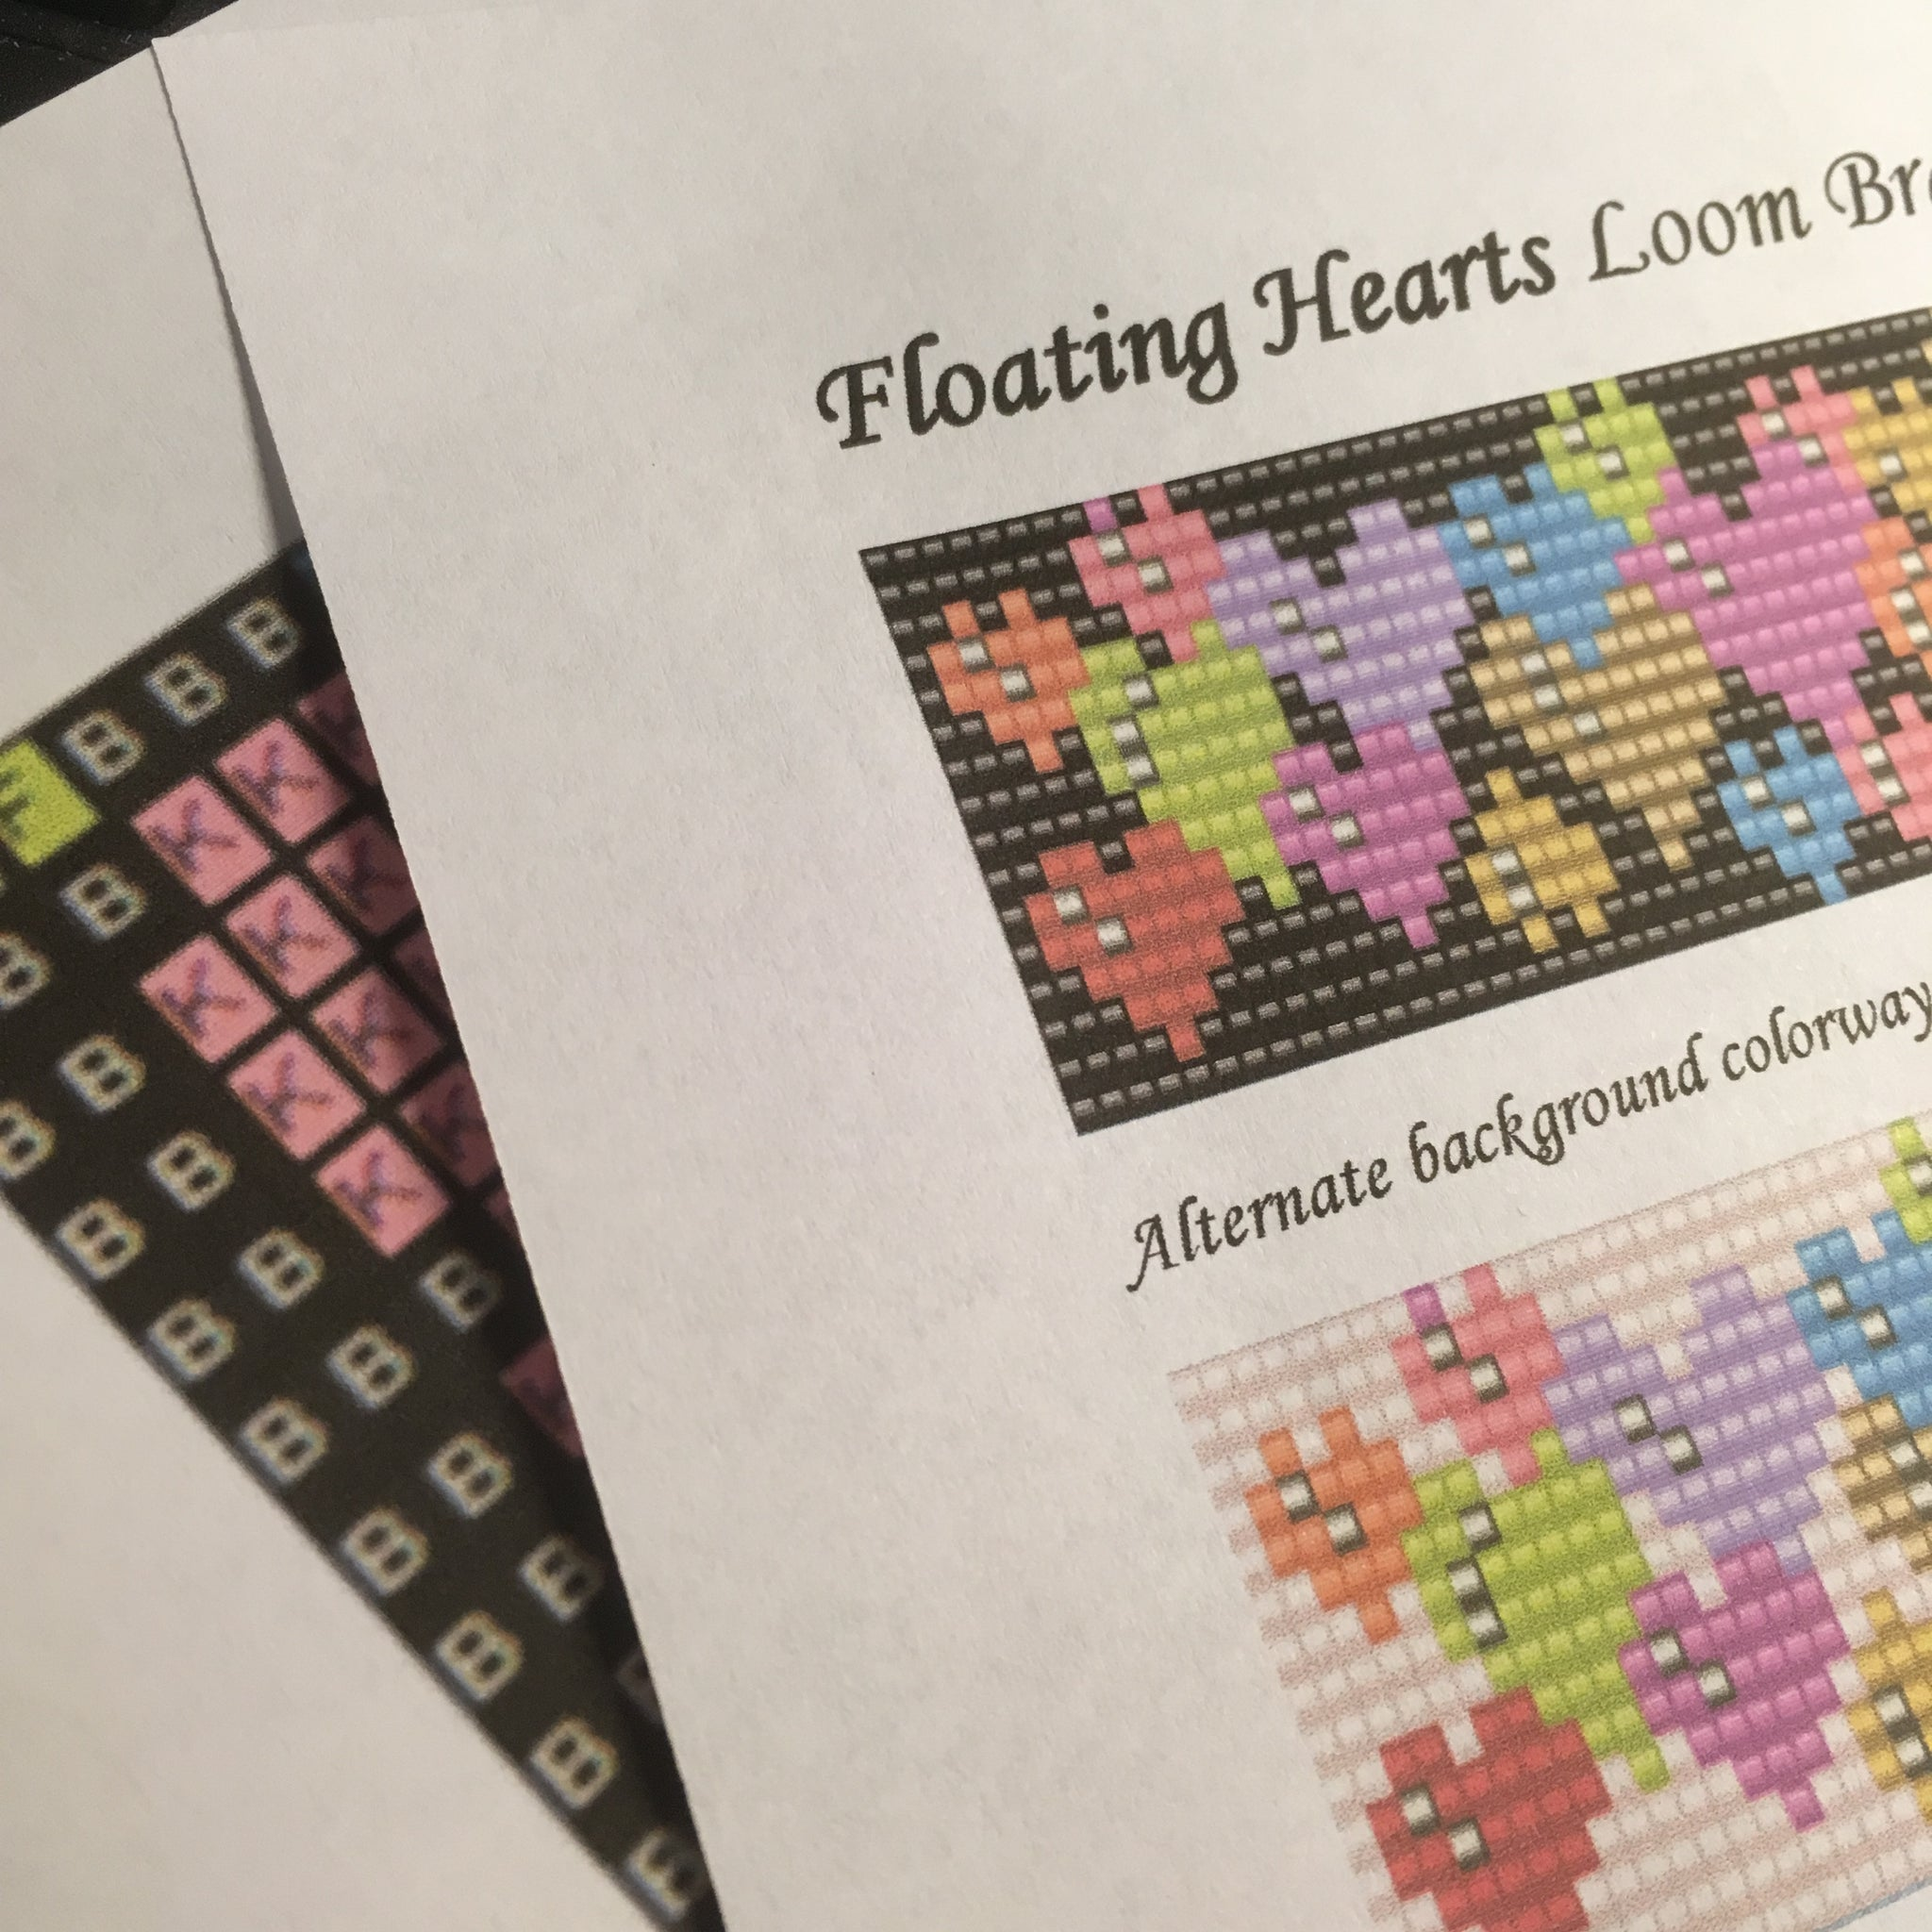 Floating Hearts Bead Loom Bracelet Pattern PDF by Susan Pelligra